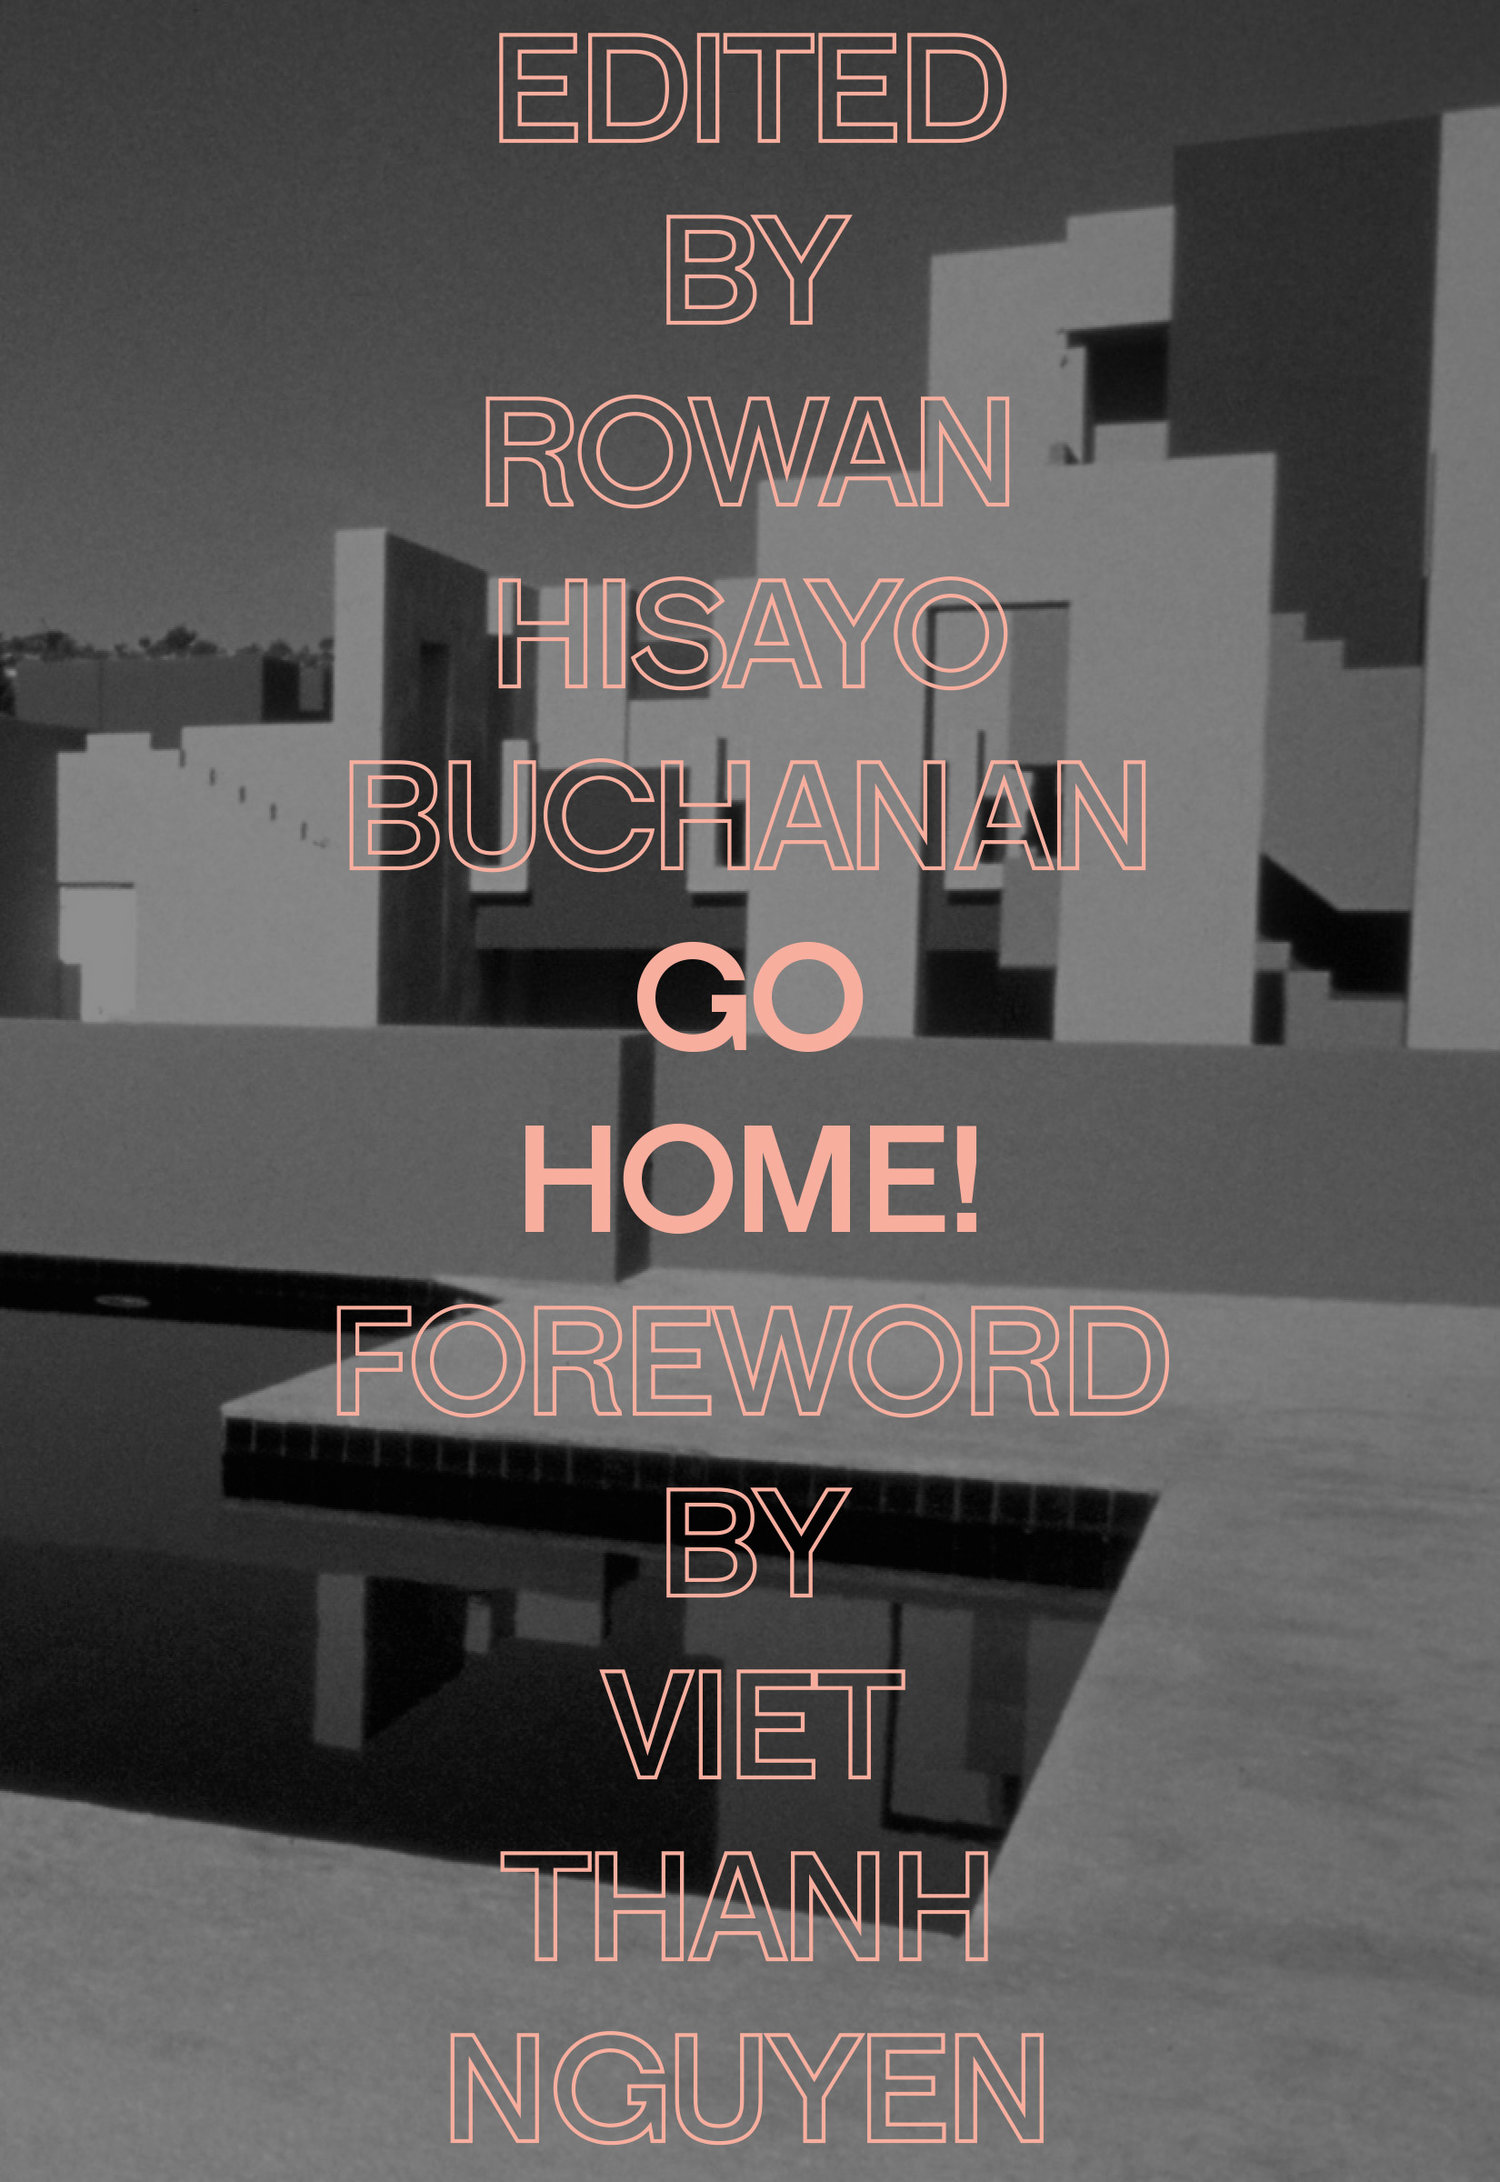 Go Home! - Edited by Rowan Hisayo Buchanan (Feminist Press)For folks willing to follow writers into exploring the idea of